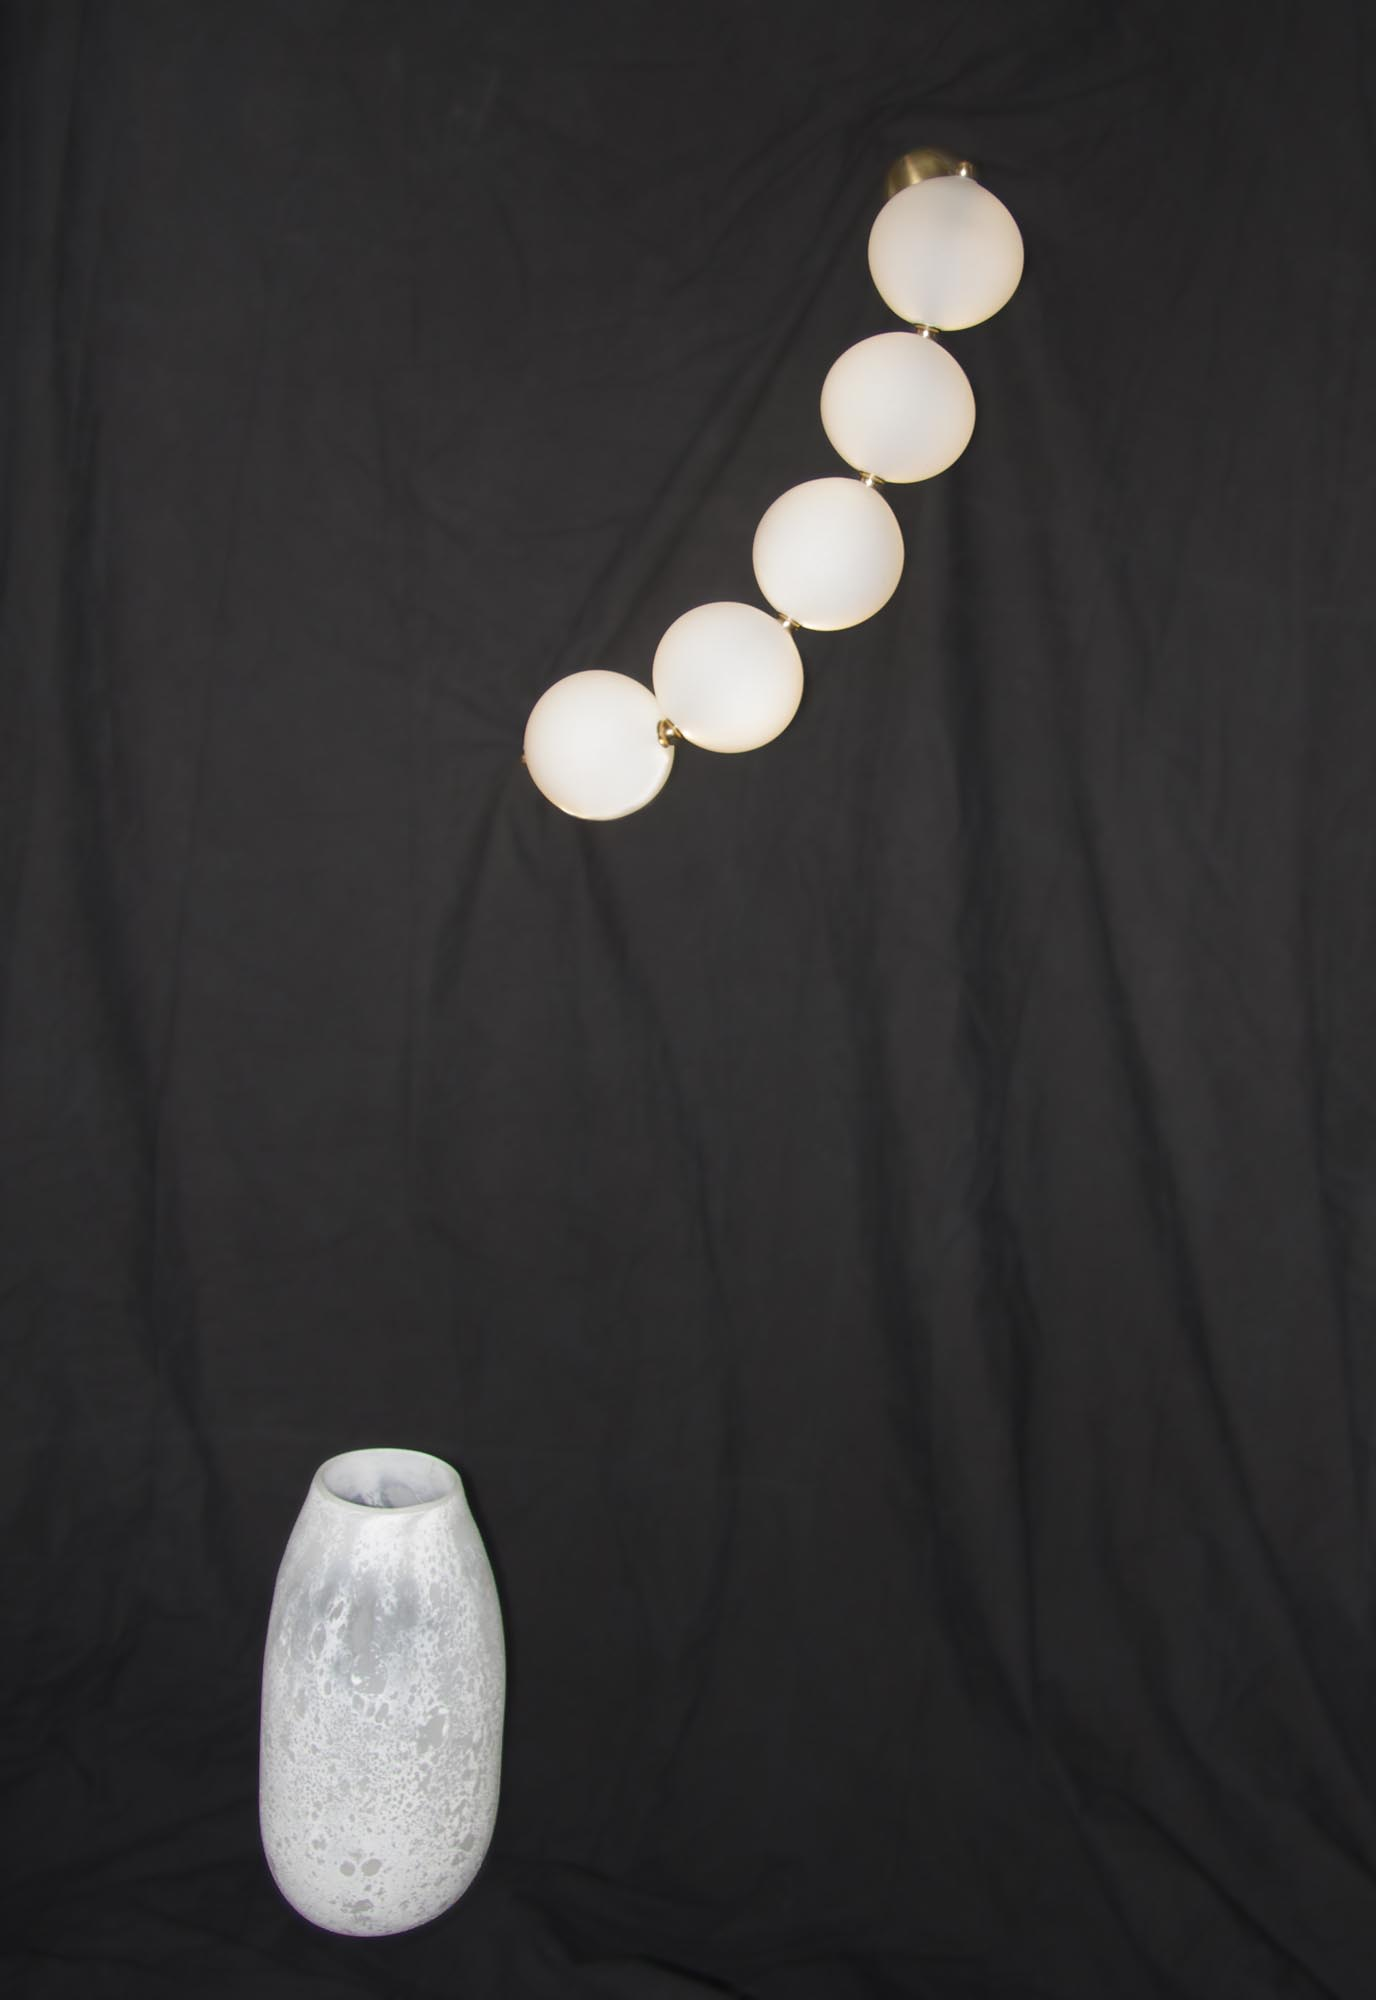 5 Perles wall light , HLD 60x45x17cm (flexible therefore adjustable)